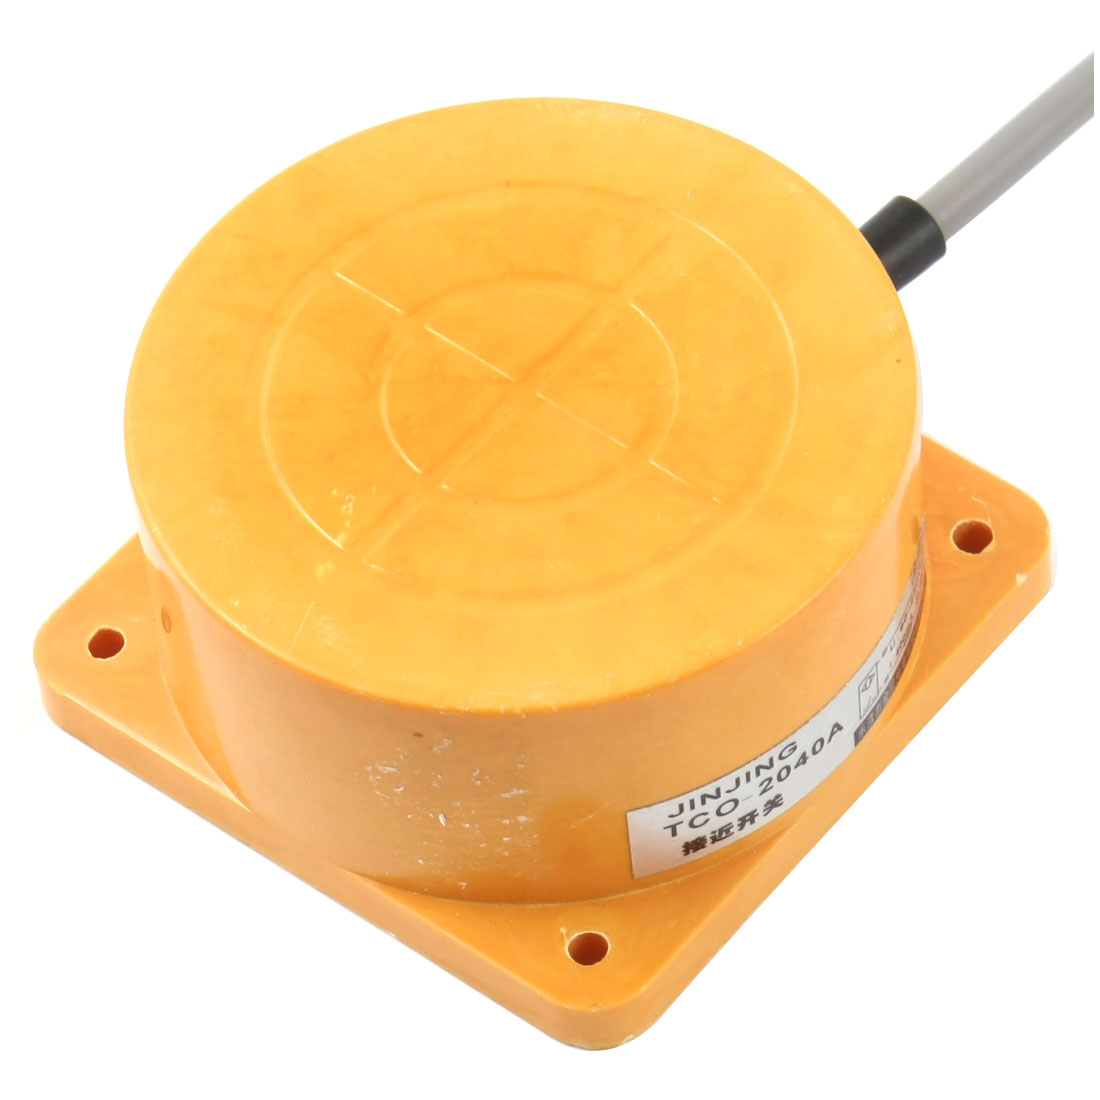 TCO-2040A AC NO 40mm Detection Distance Inductive Sensor Proximity Switch